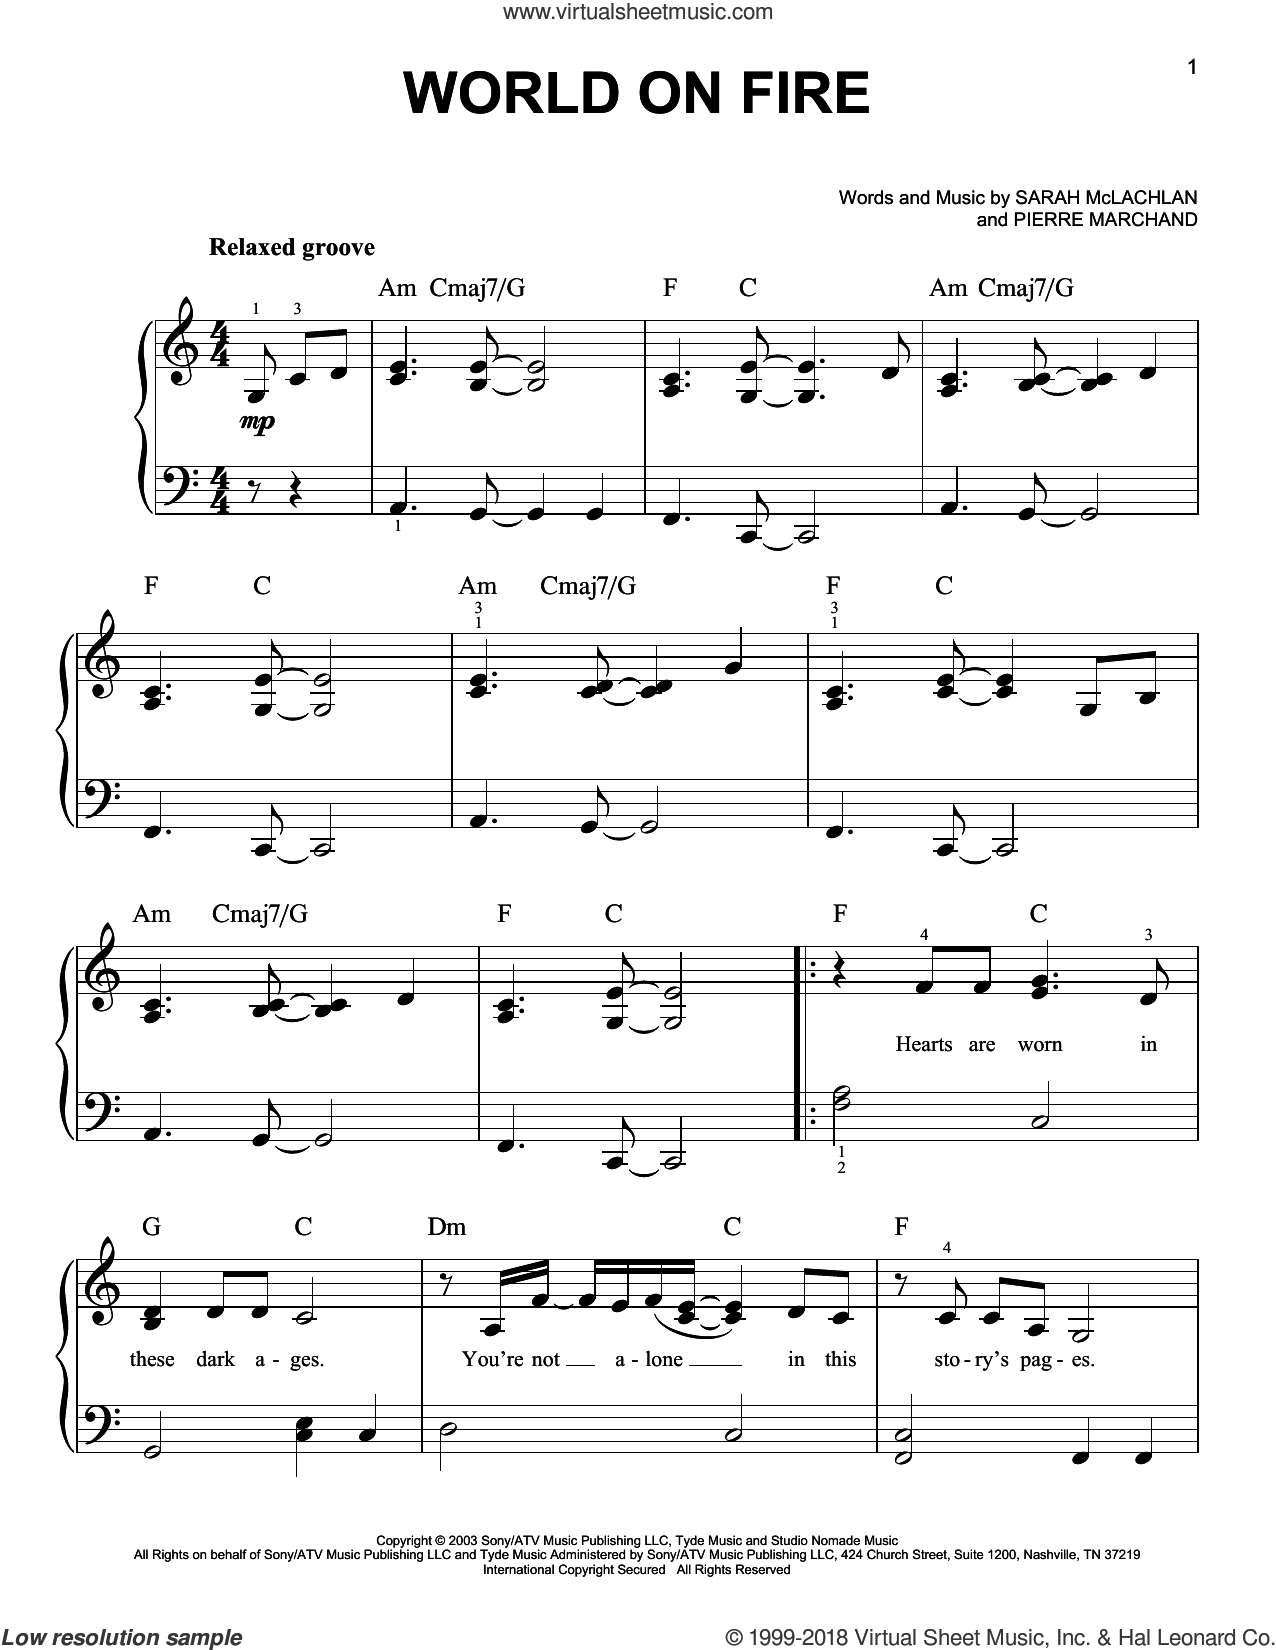 World On Fire sheet music for piano solo by Sarah McLachlan and Pierre Marchand, easy skill level